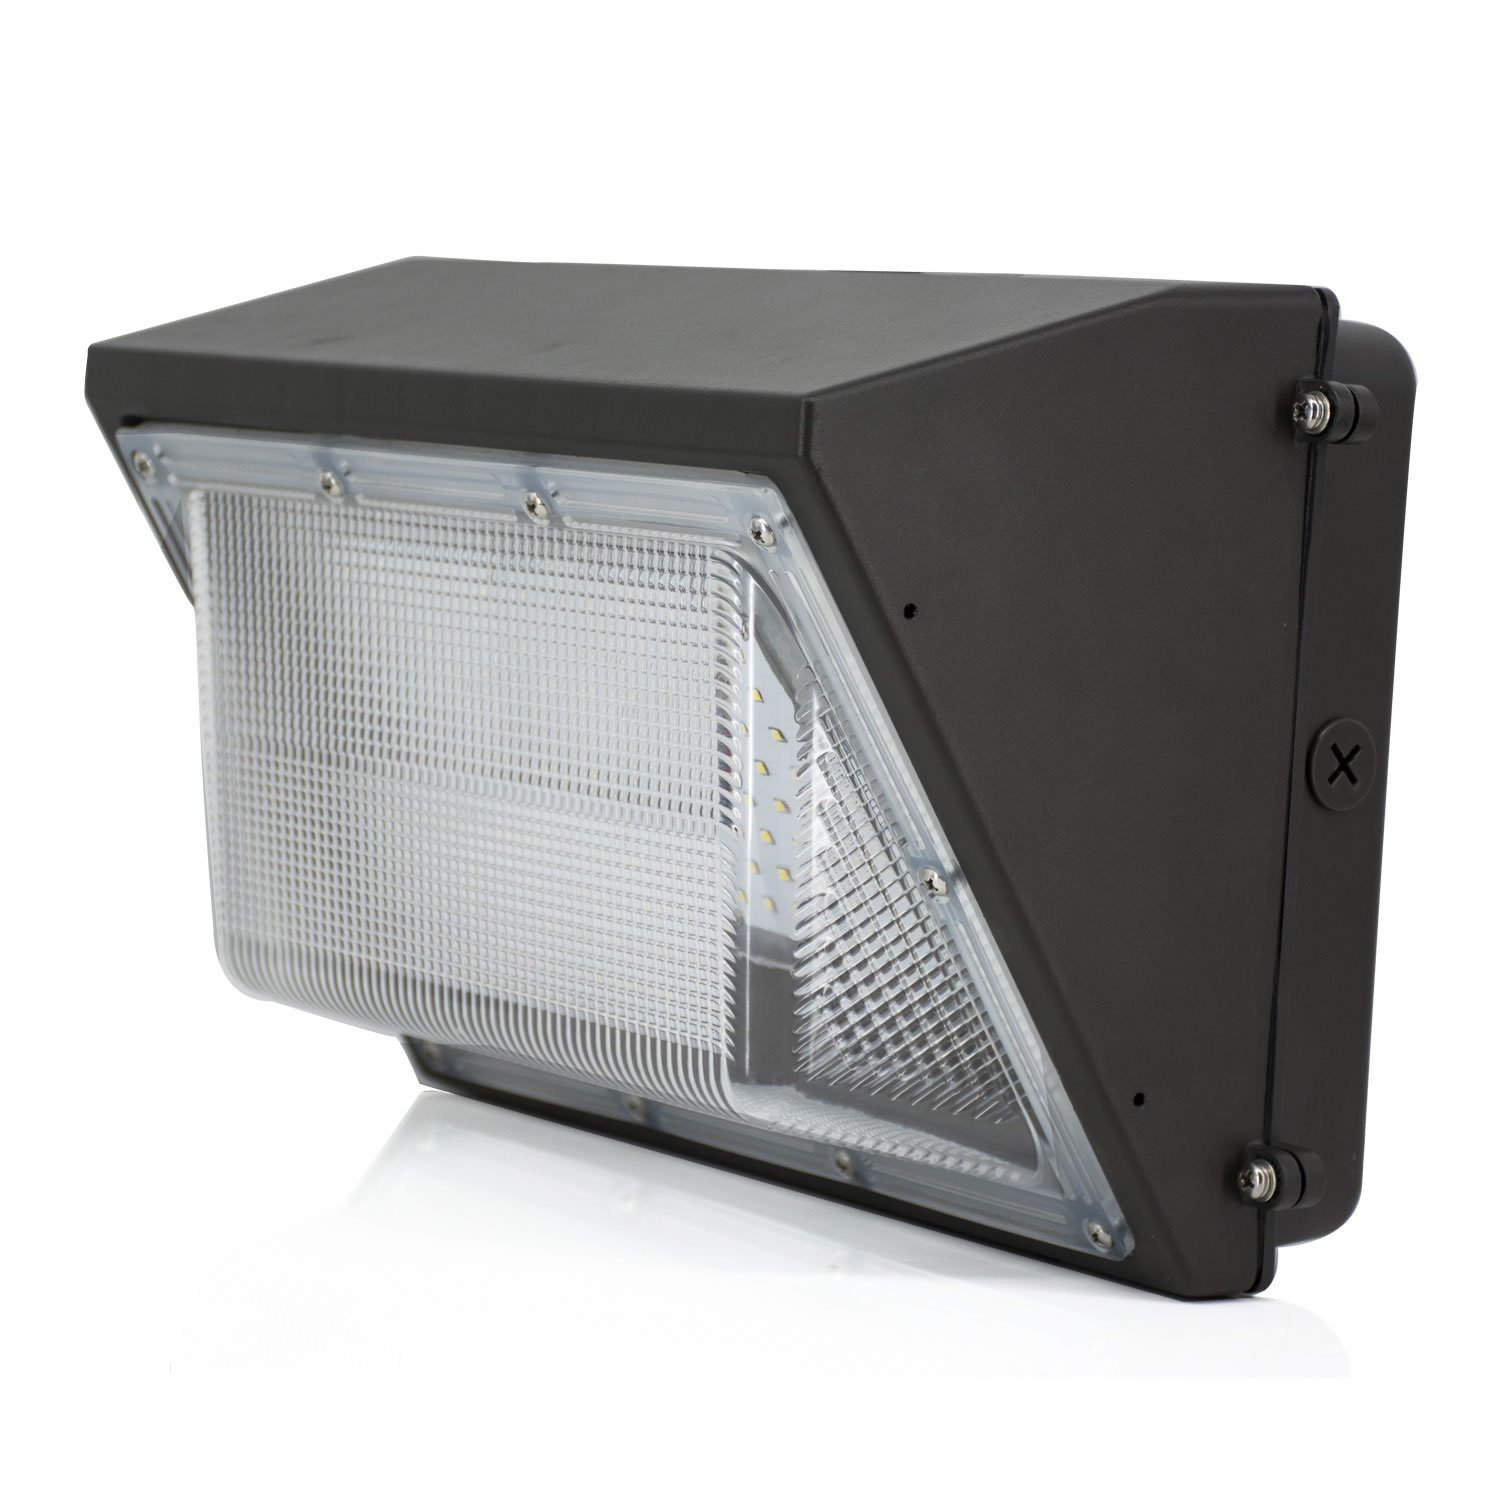 100W LED Wall Pack Light, JESLED Wall Pack LED Outdoor Flood Lighting, 5000-5500K Daylight White, 12800lm, 400-600 Watt HPS/HID Replacement, AC100-277V Industrial, Commercial, Residential Wall Lamps